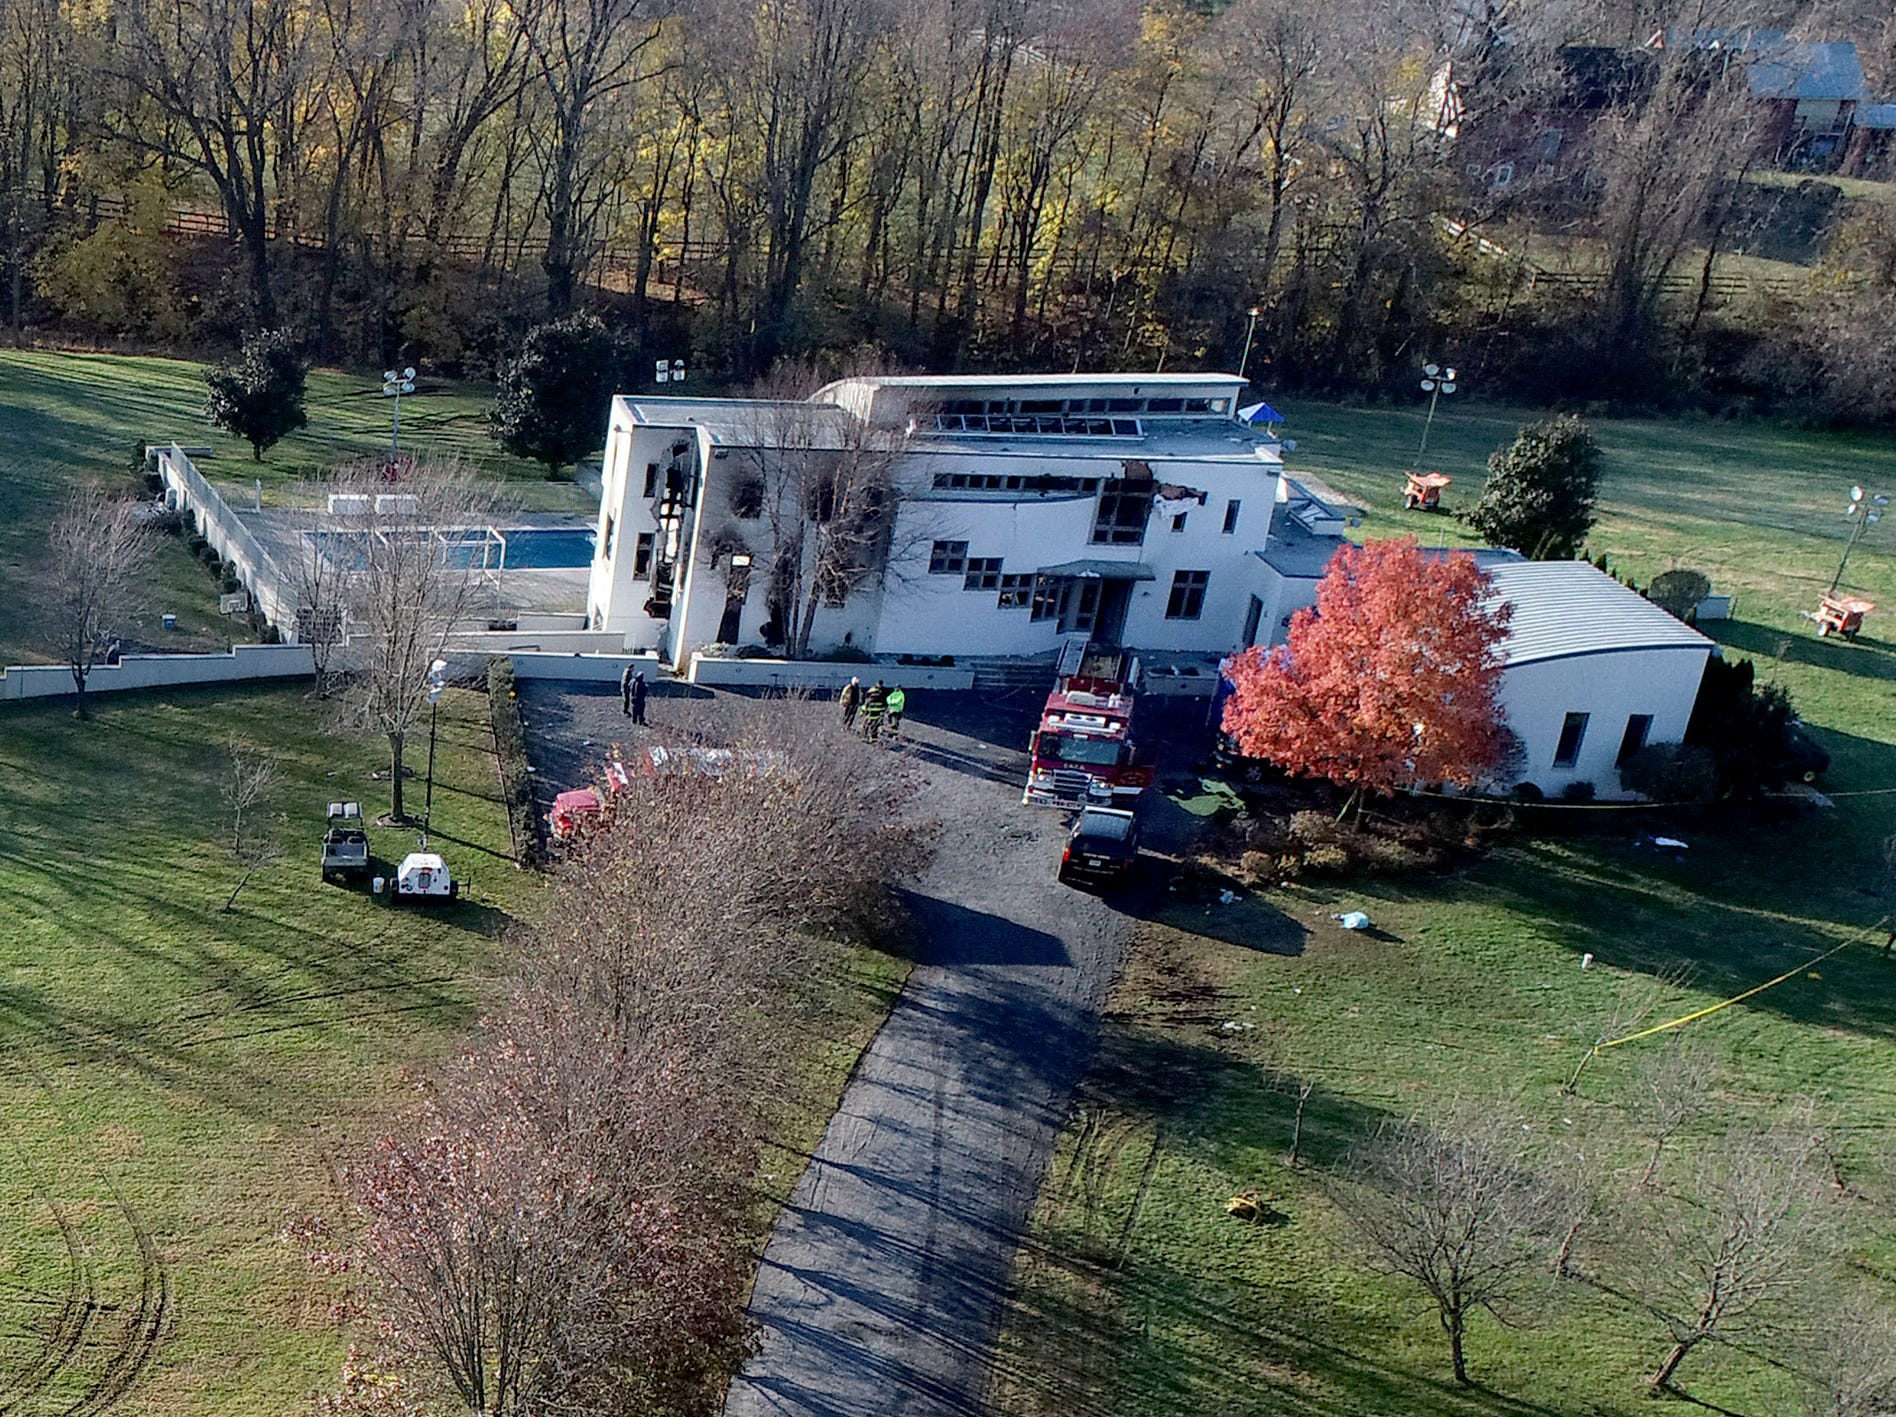 The investigation continues Wednesday morning, November 21, 2018, at the scene of a fire at 15 Willow Brook Road in Colts Neck that left four people dead